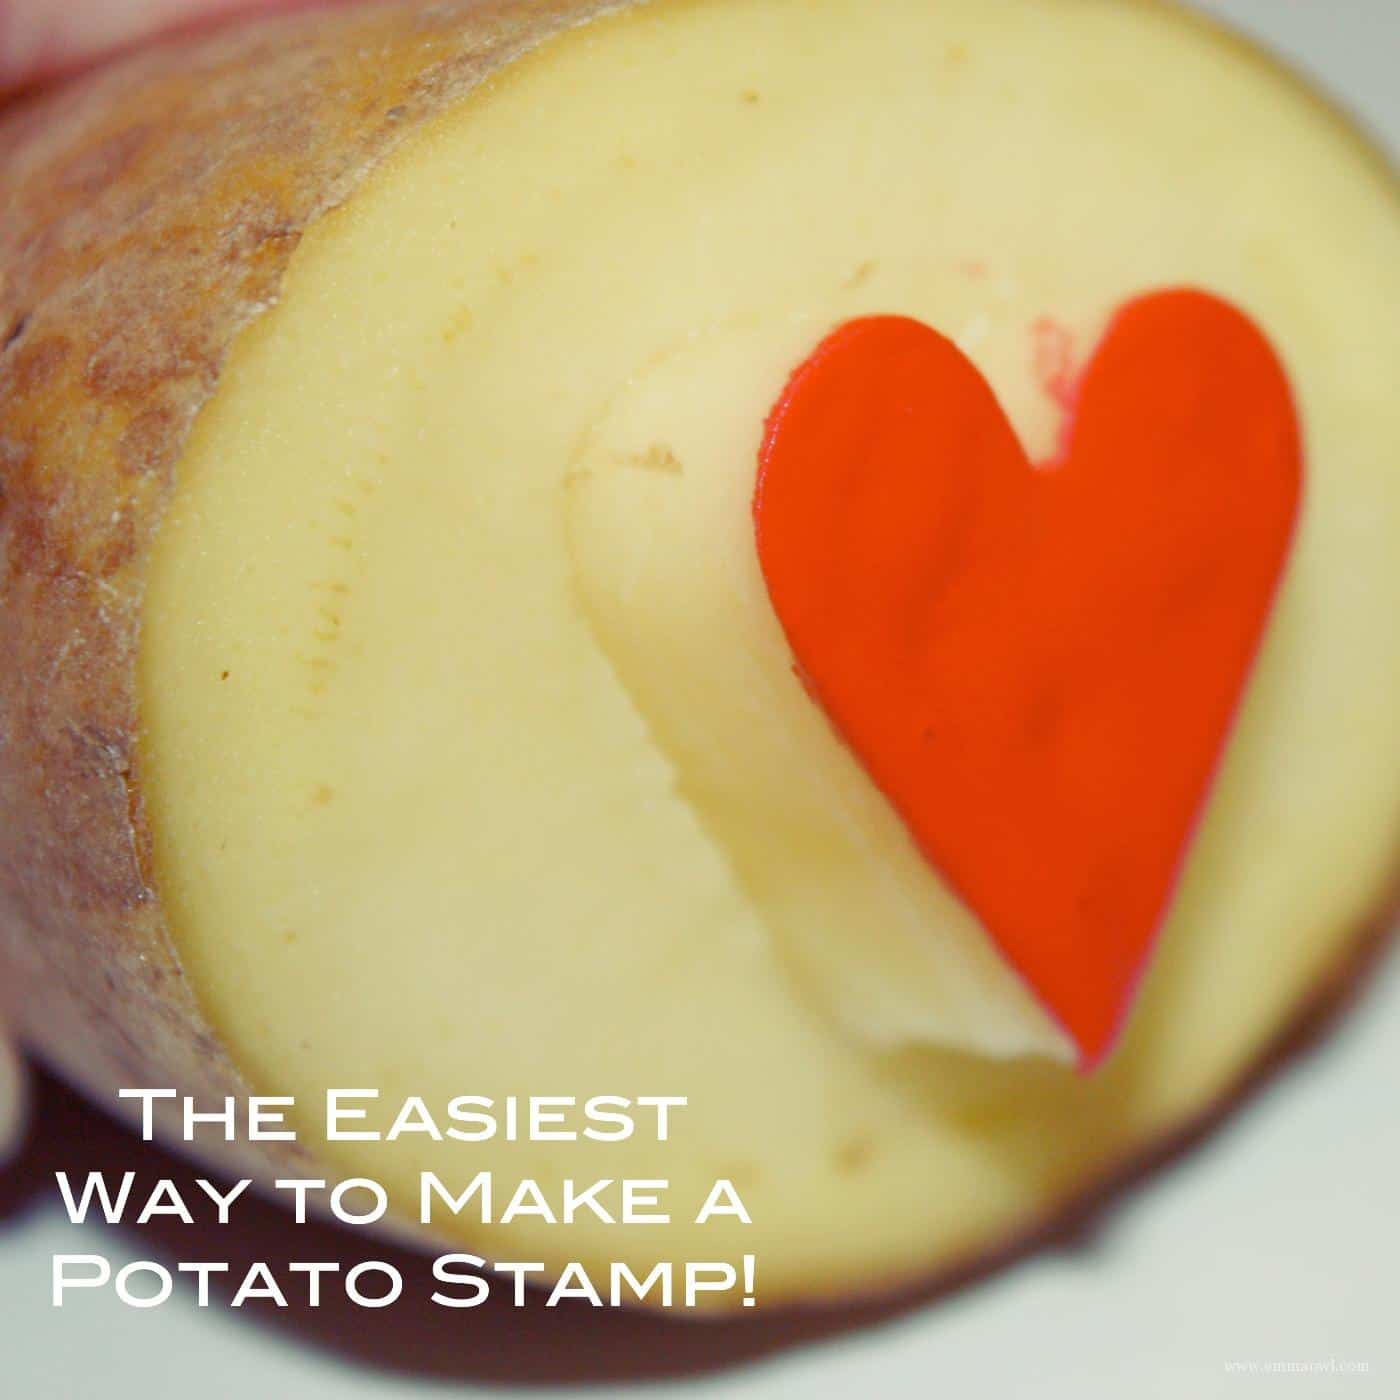 The Greatest Simplest Way To Cook A Potato: How To Make You Own Potato Stamp